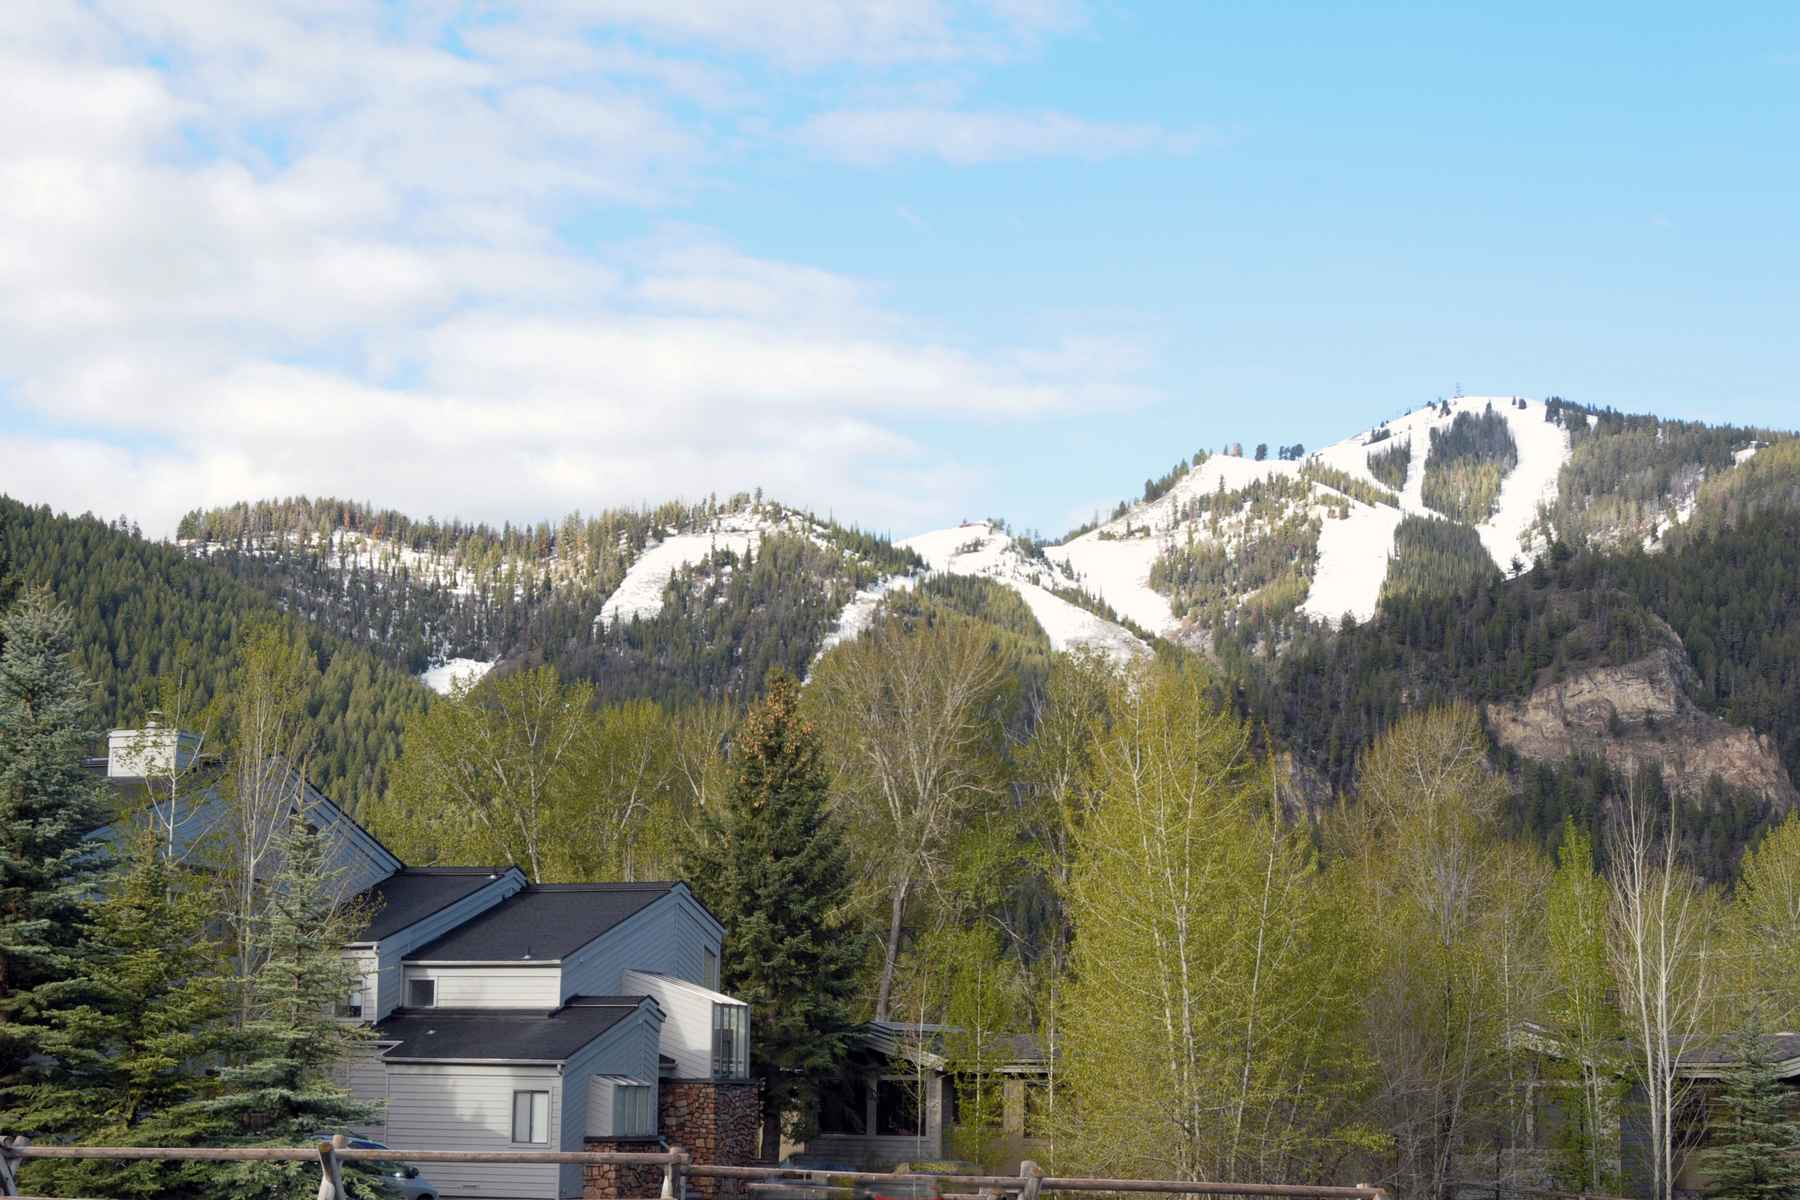 Condominium for Sale at In Town Value 361 S. Leadville Ave #6 Ketchum, Idaho 83340 United States